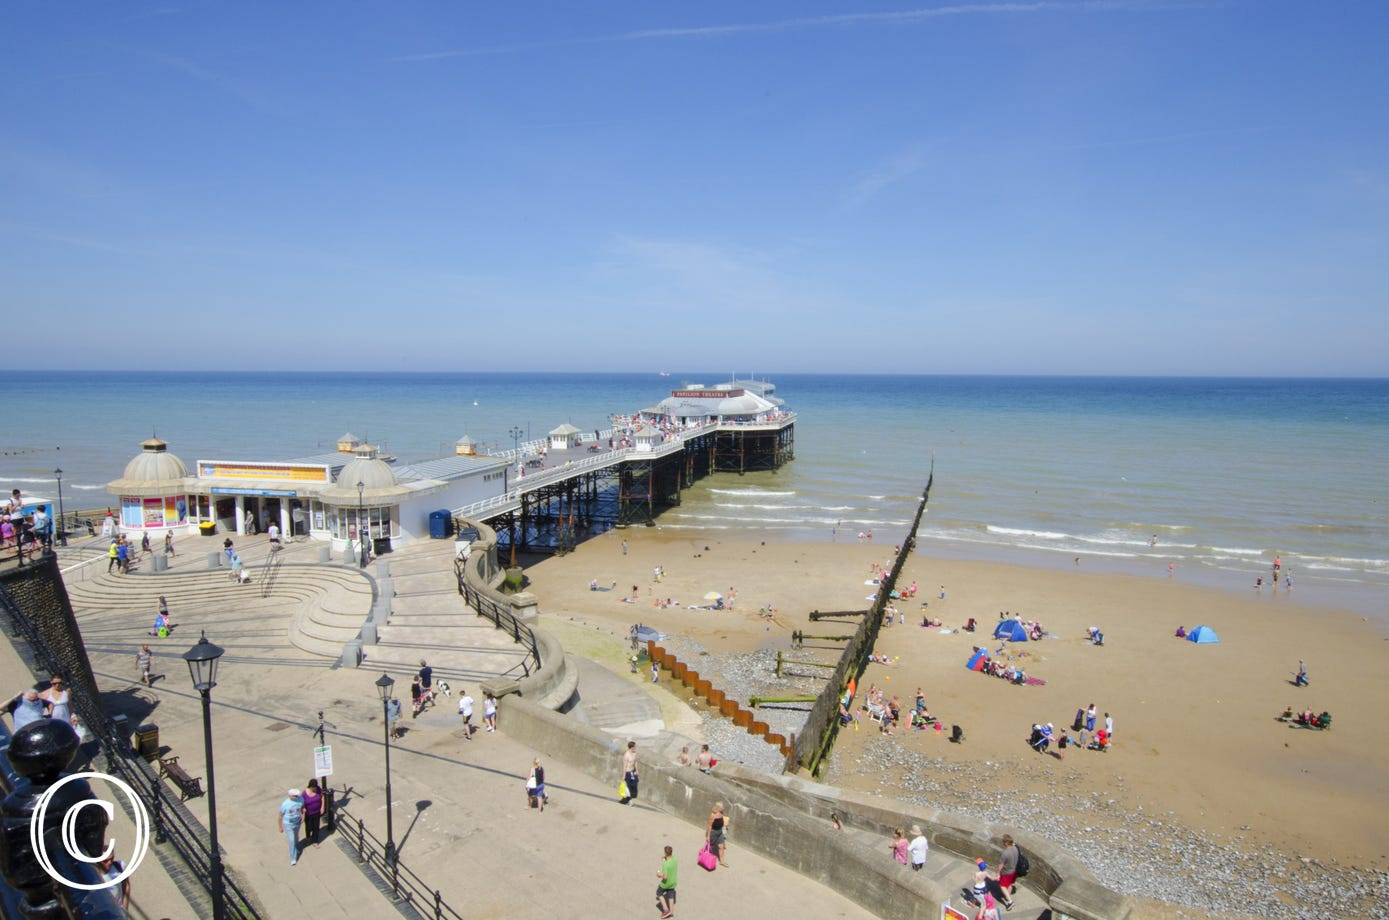 Cromer Pier and the sandy beach